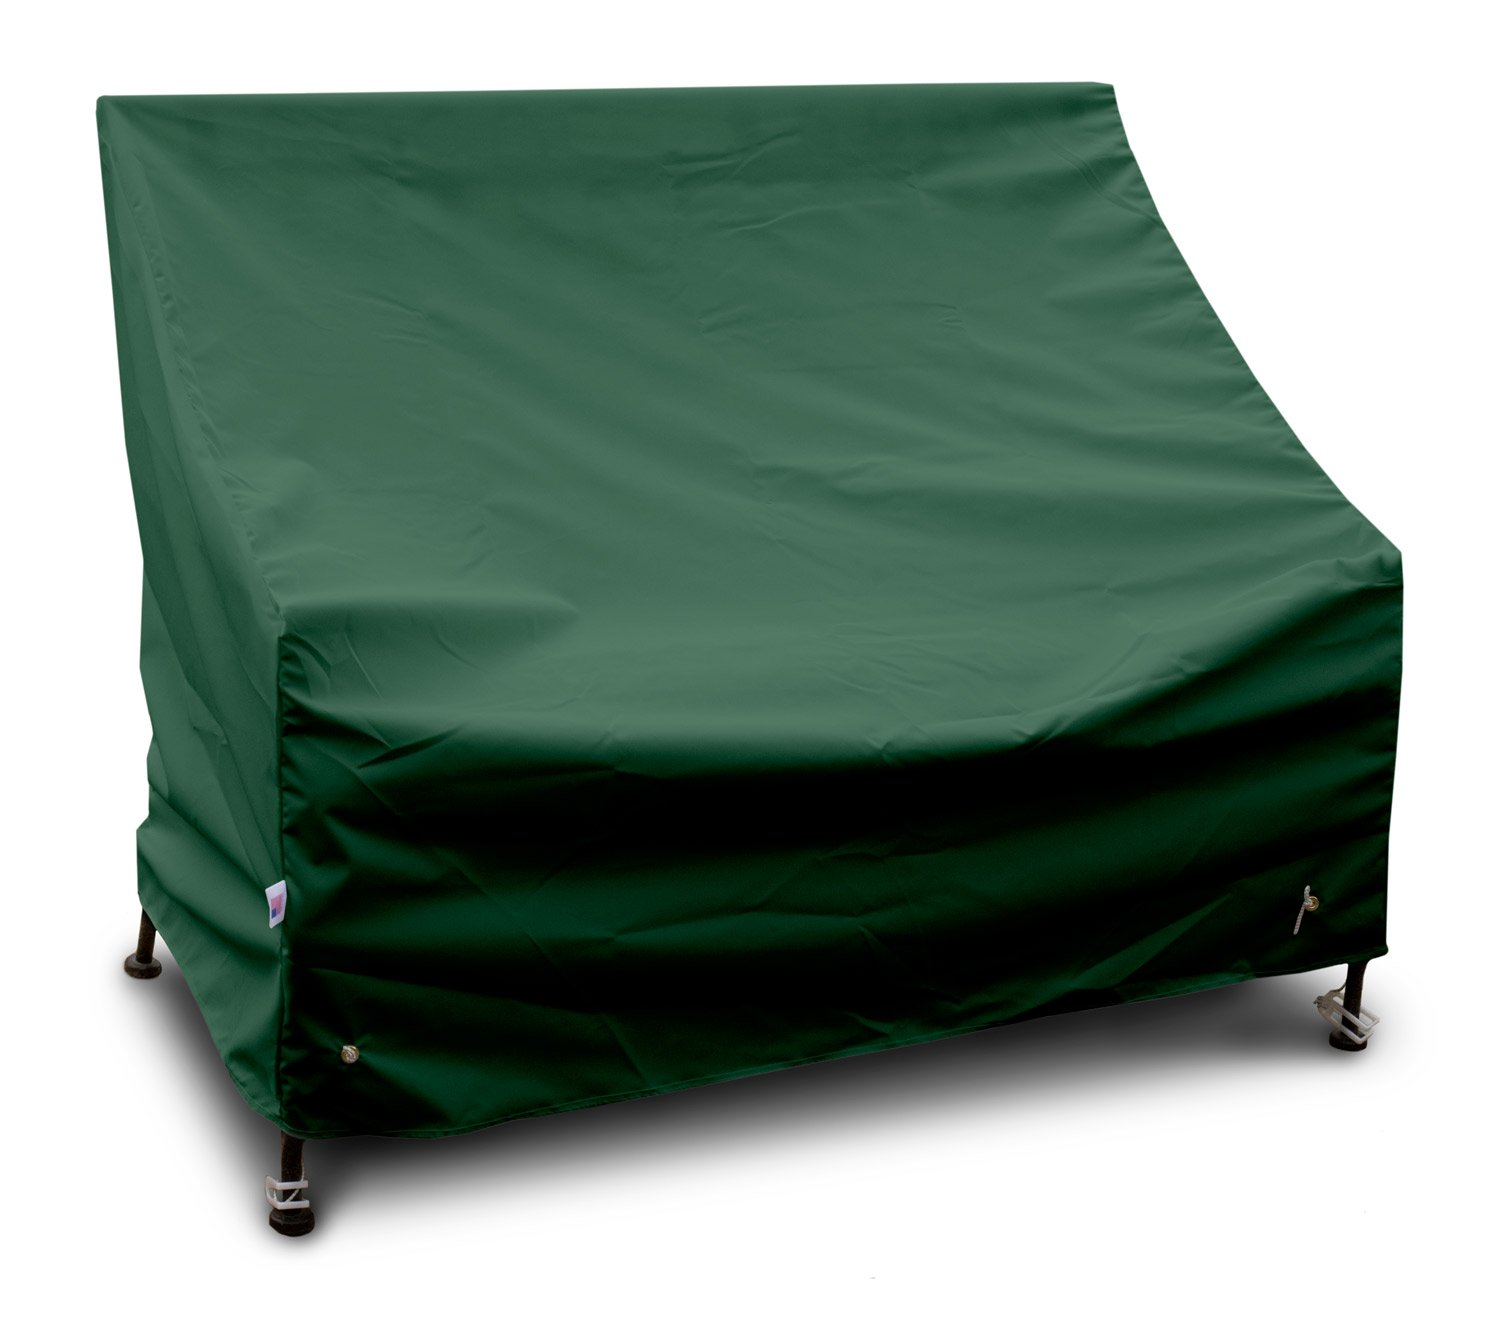 KoverRoos Weathermax 64202 4-Feet Bench/Glider Cover, 51-Inch Width by 26-Inch Diameter by 35-Inch Height, Forest Green by KOVERROOS